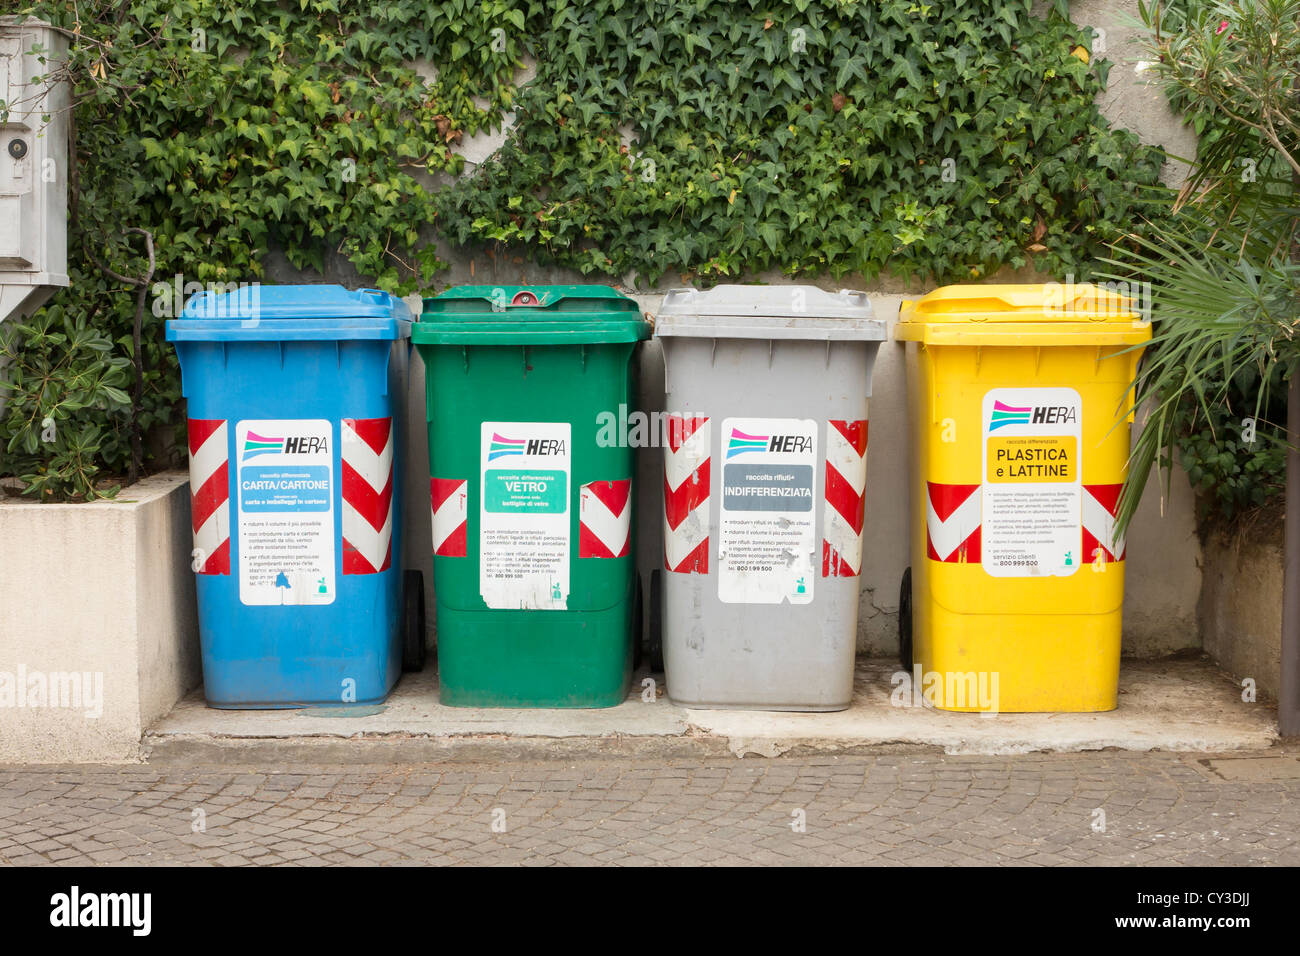 recycling bins in italy stock image